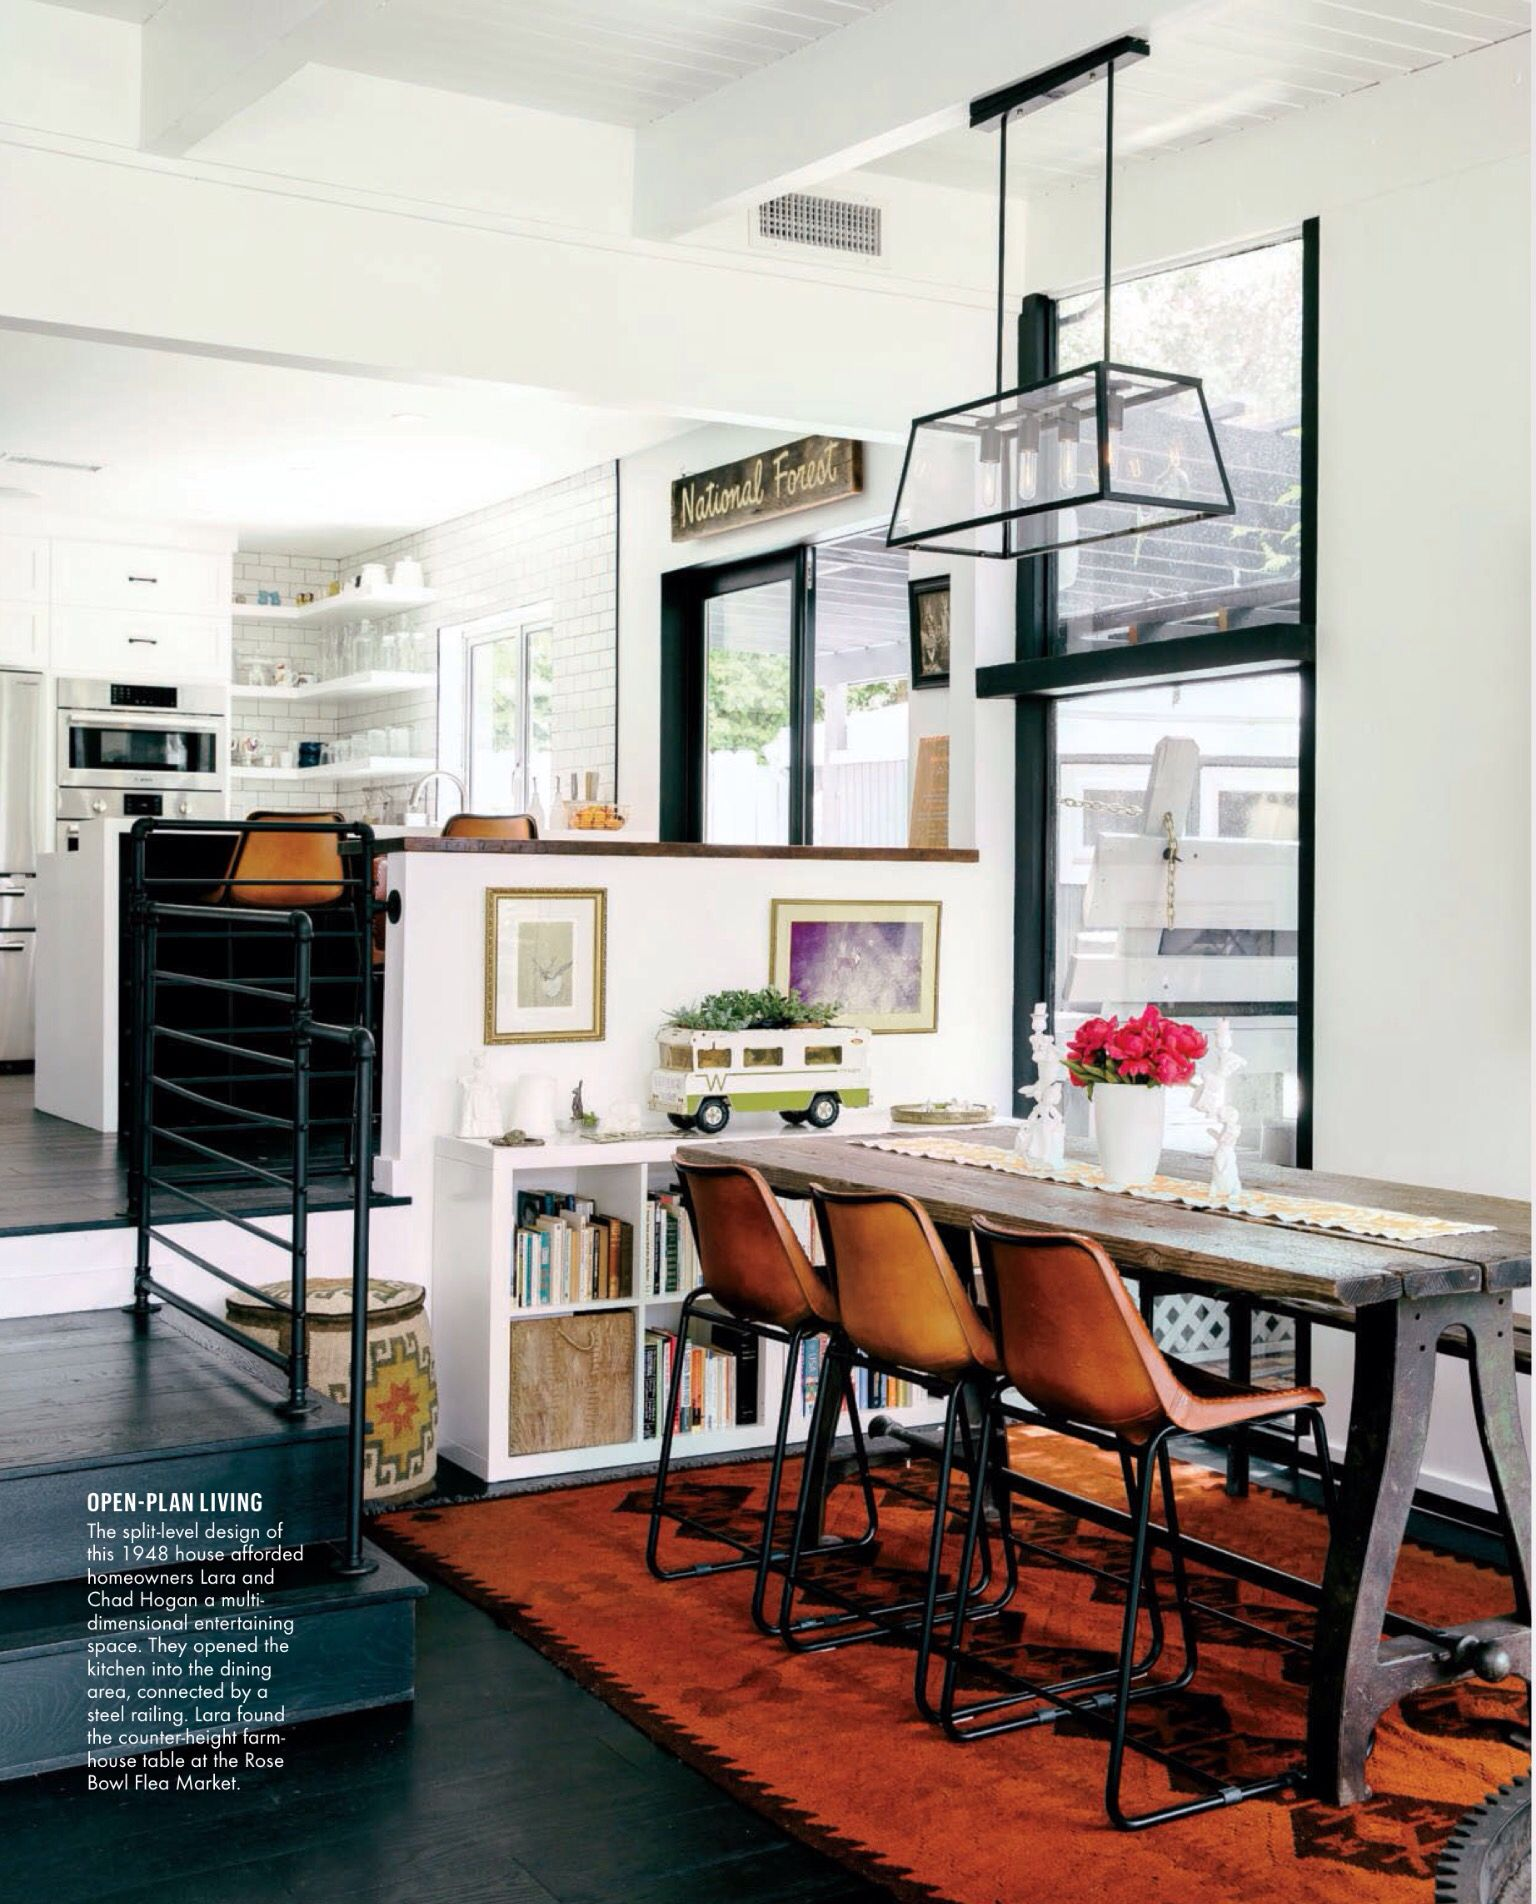 Sunset magazine Contemporary interior design, Interior